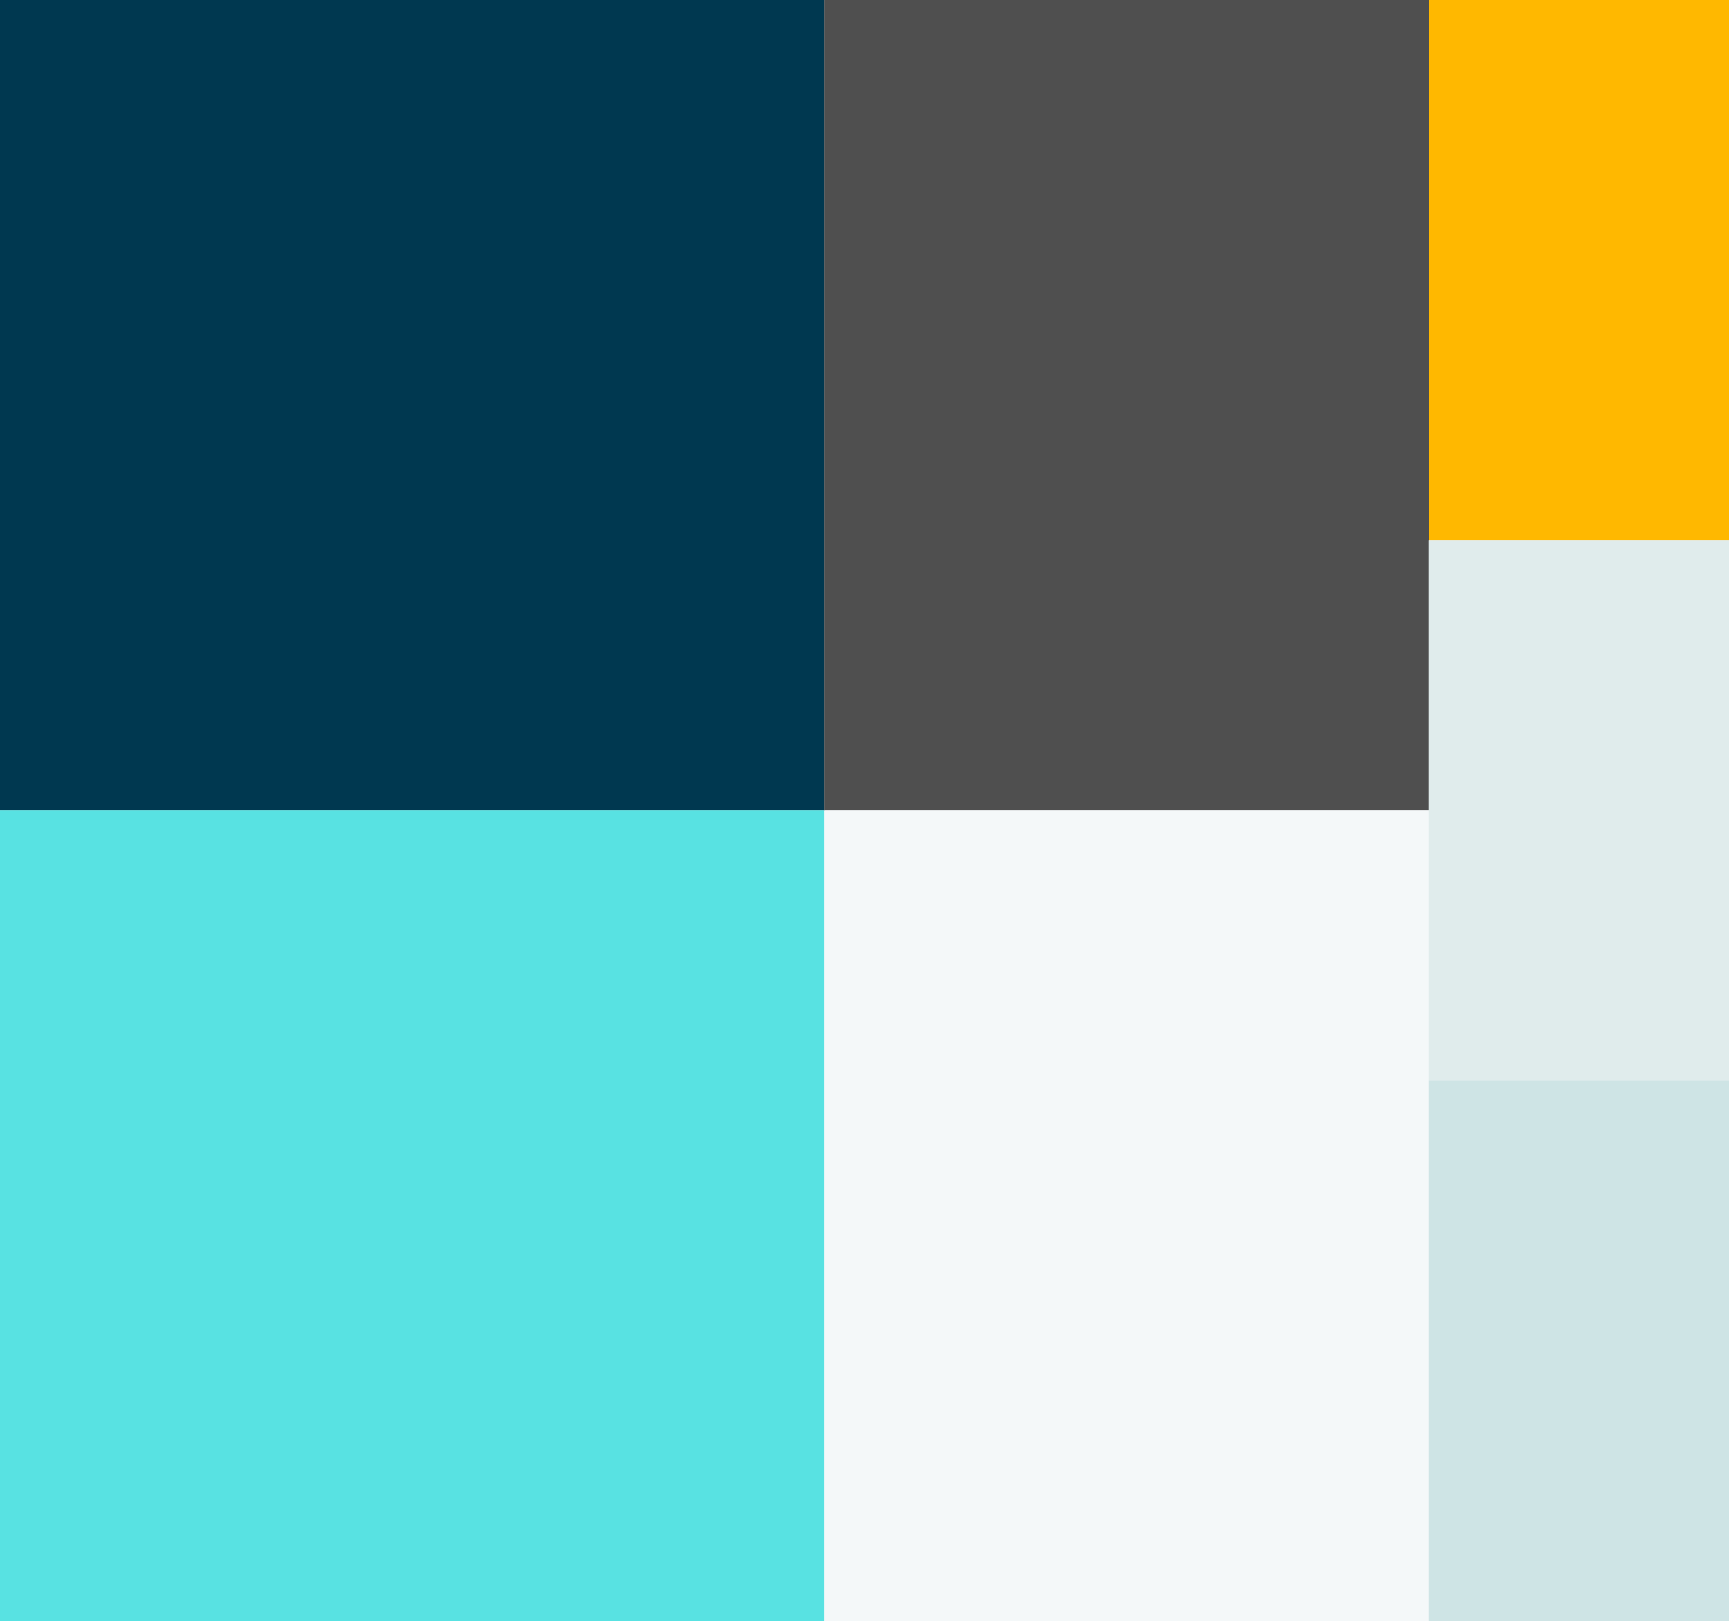 Updated color palette